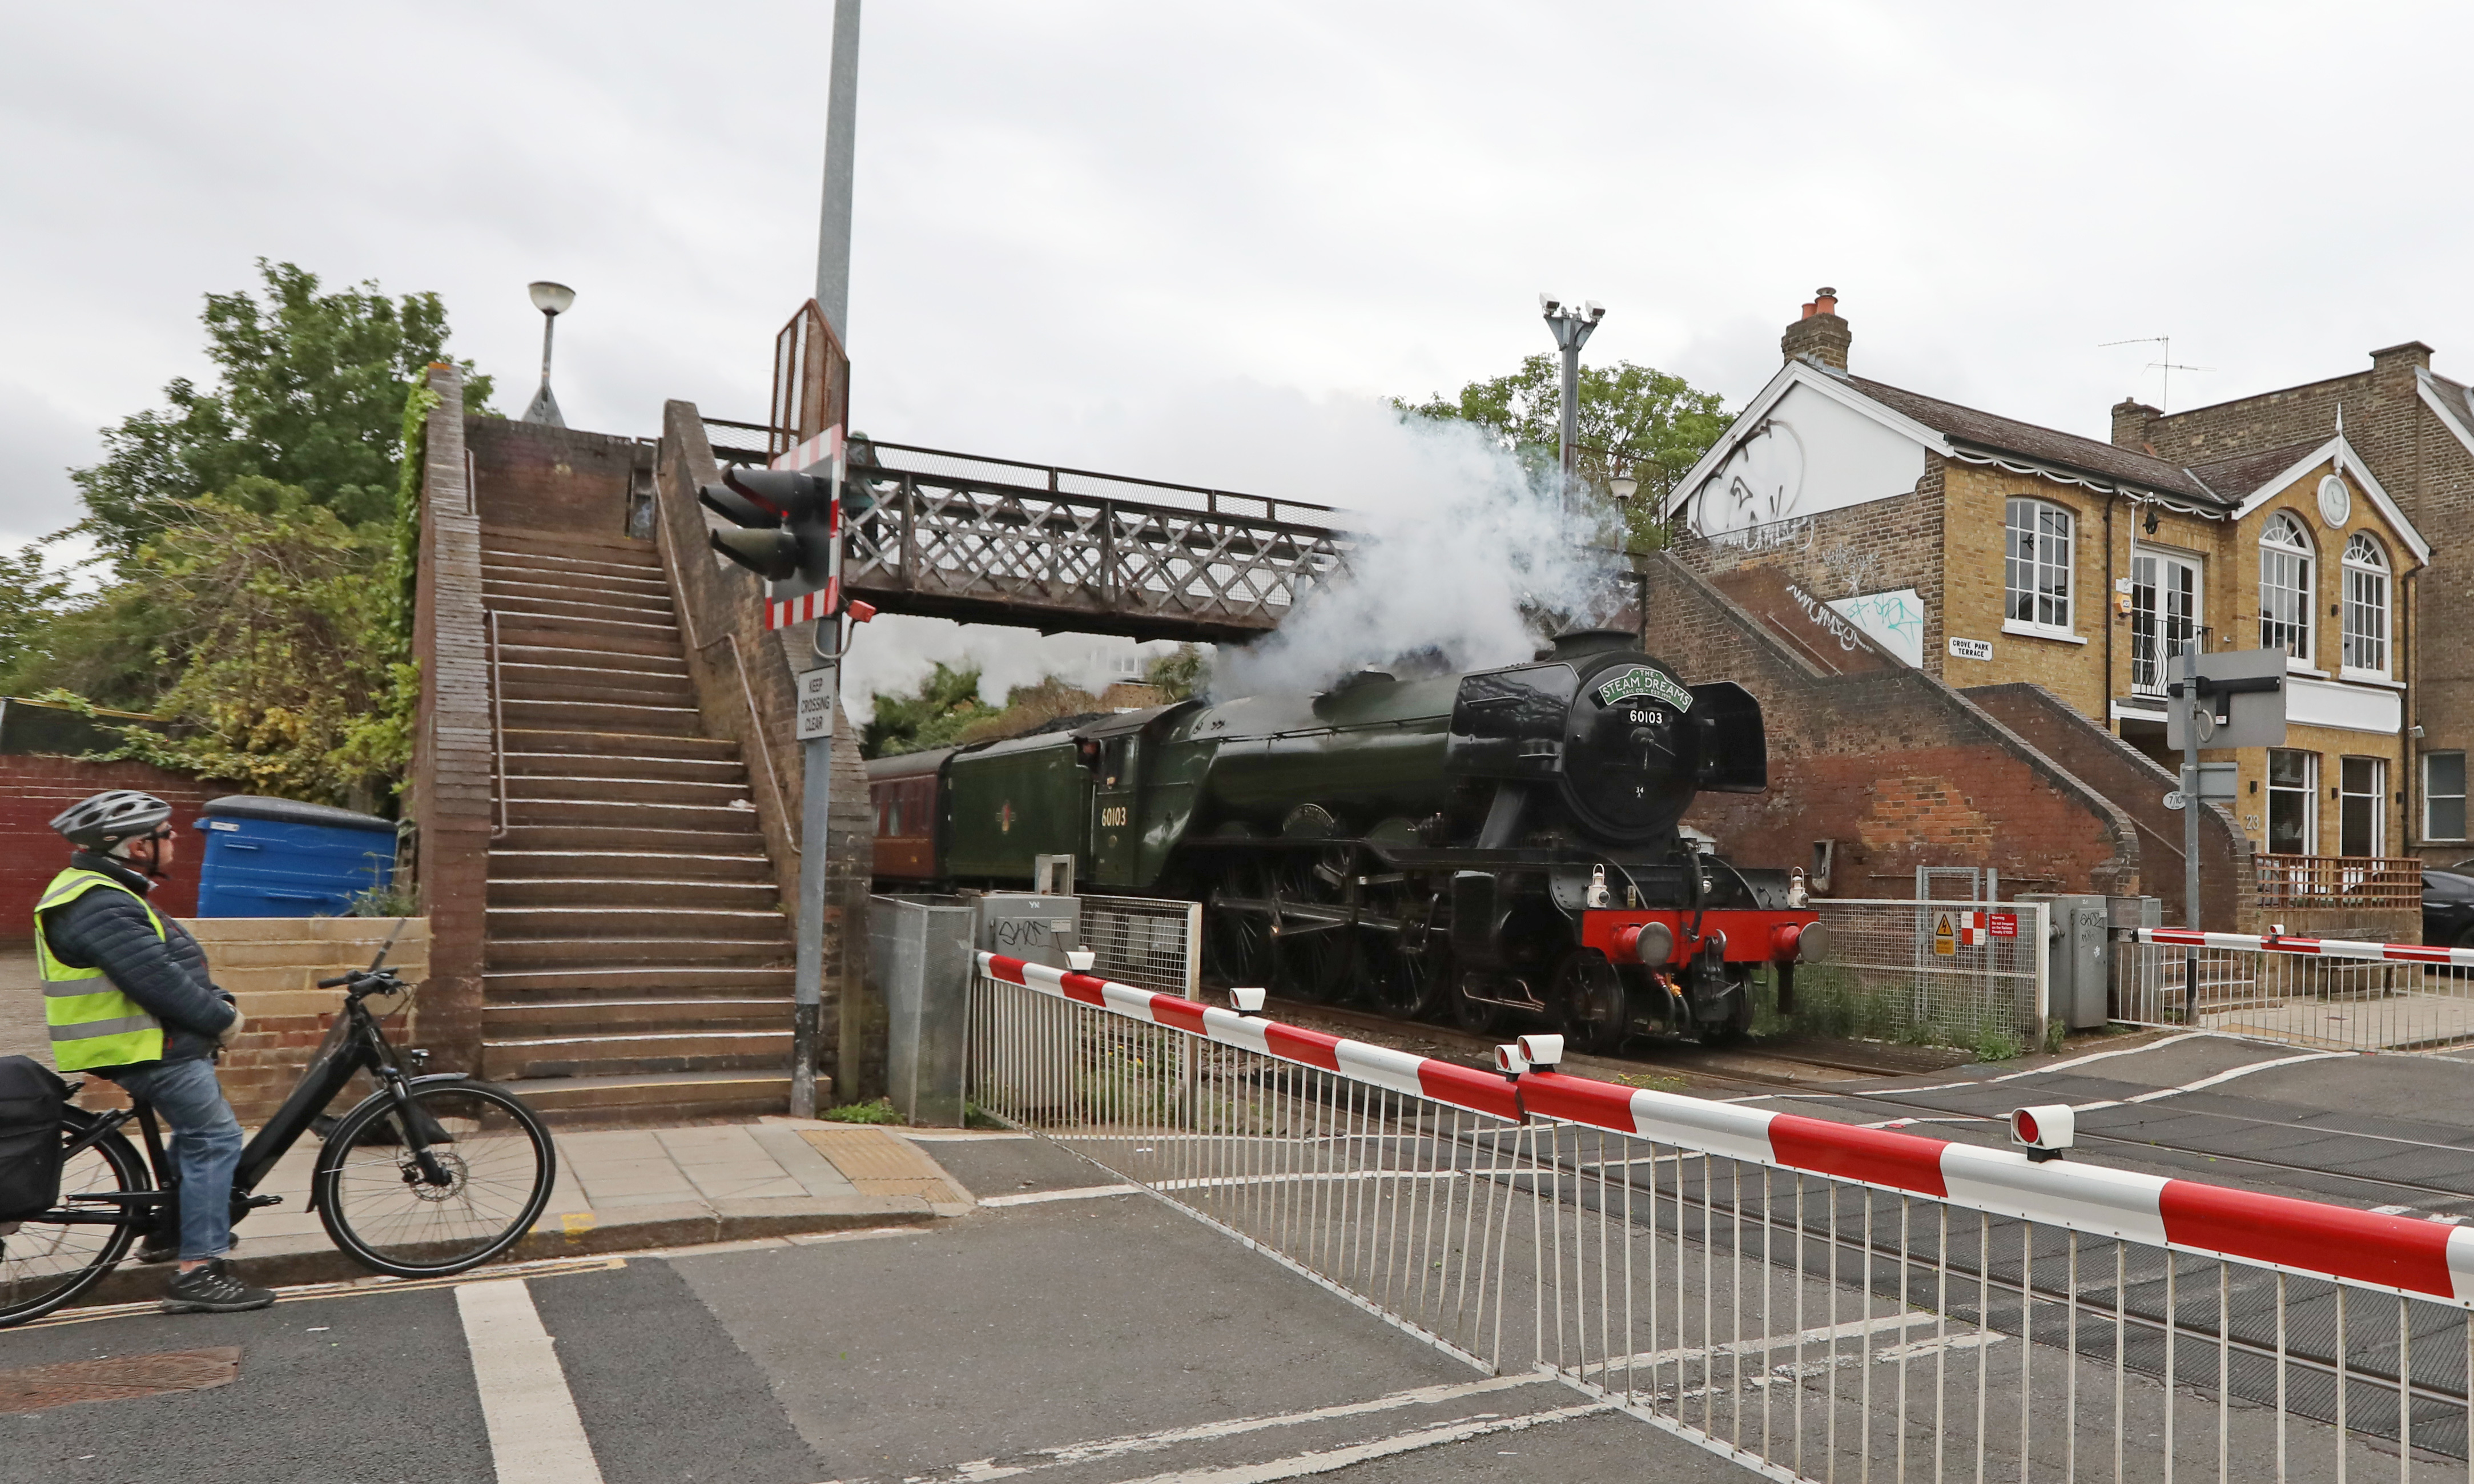 <p>The National Railway Museum's Flying Scotsman passes over a level crossing in Chiswick, west London, on its first main line trip with passengers since 2019 as part of The Steam Dreams Rail Company's series of summer trains from London Victoria Station. Picture date: Thursday May 20, 2021.</p>